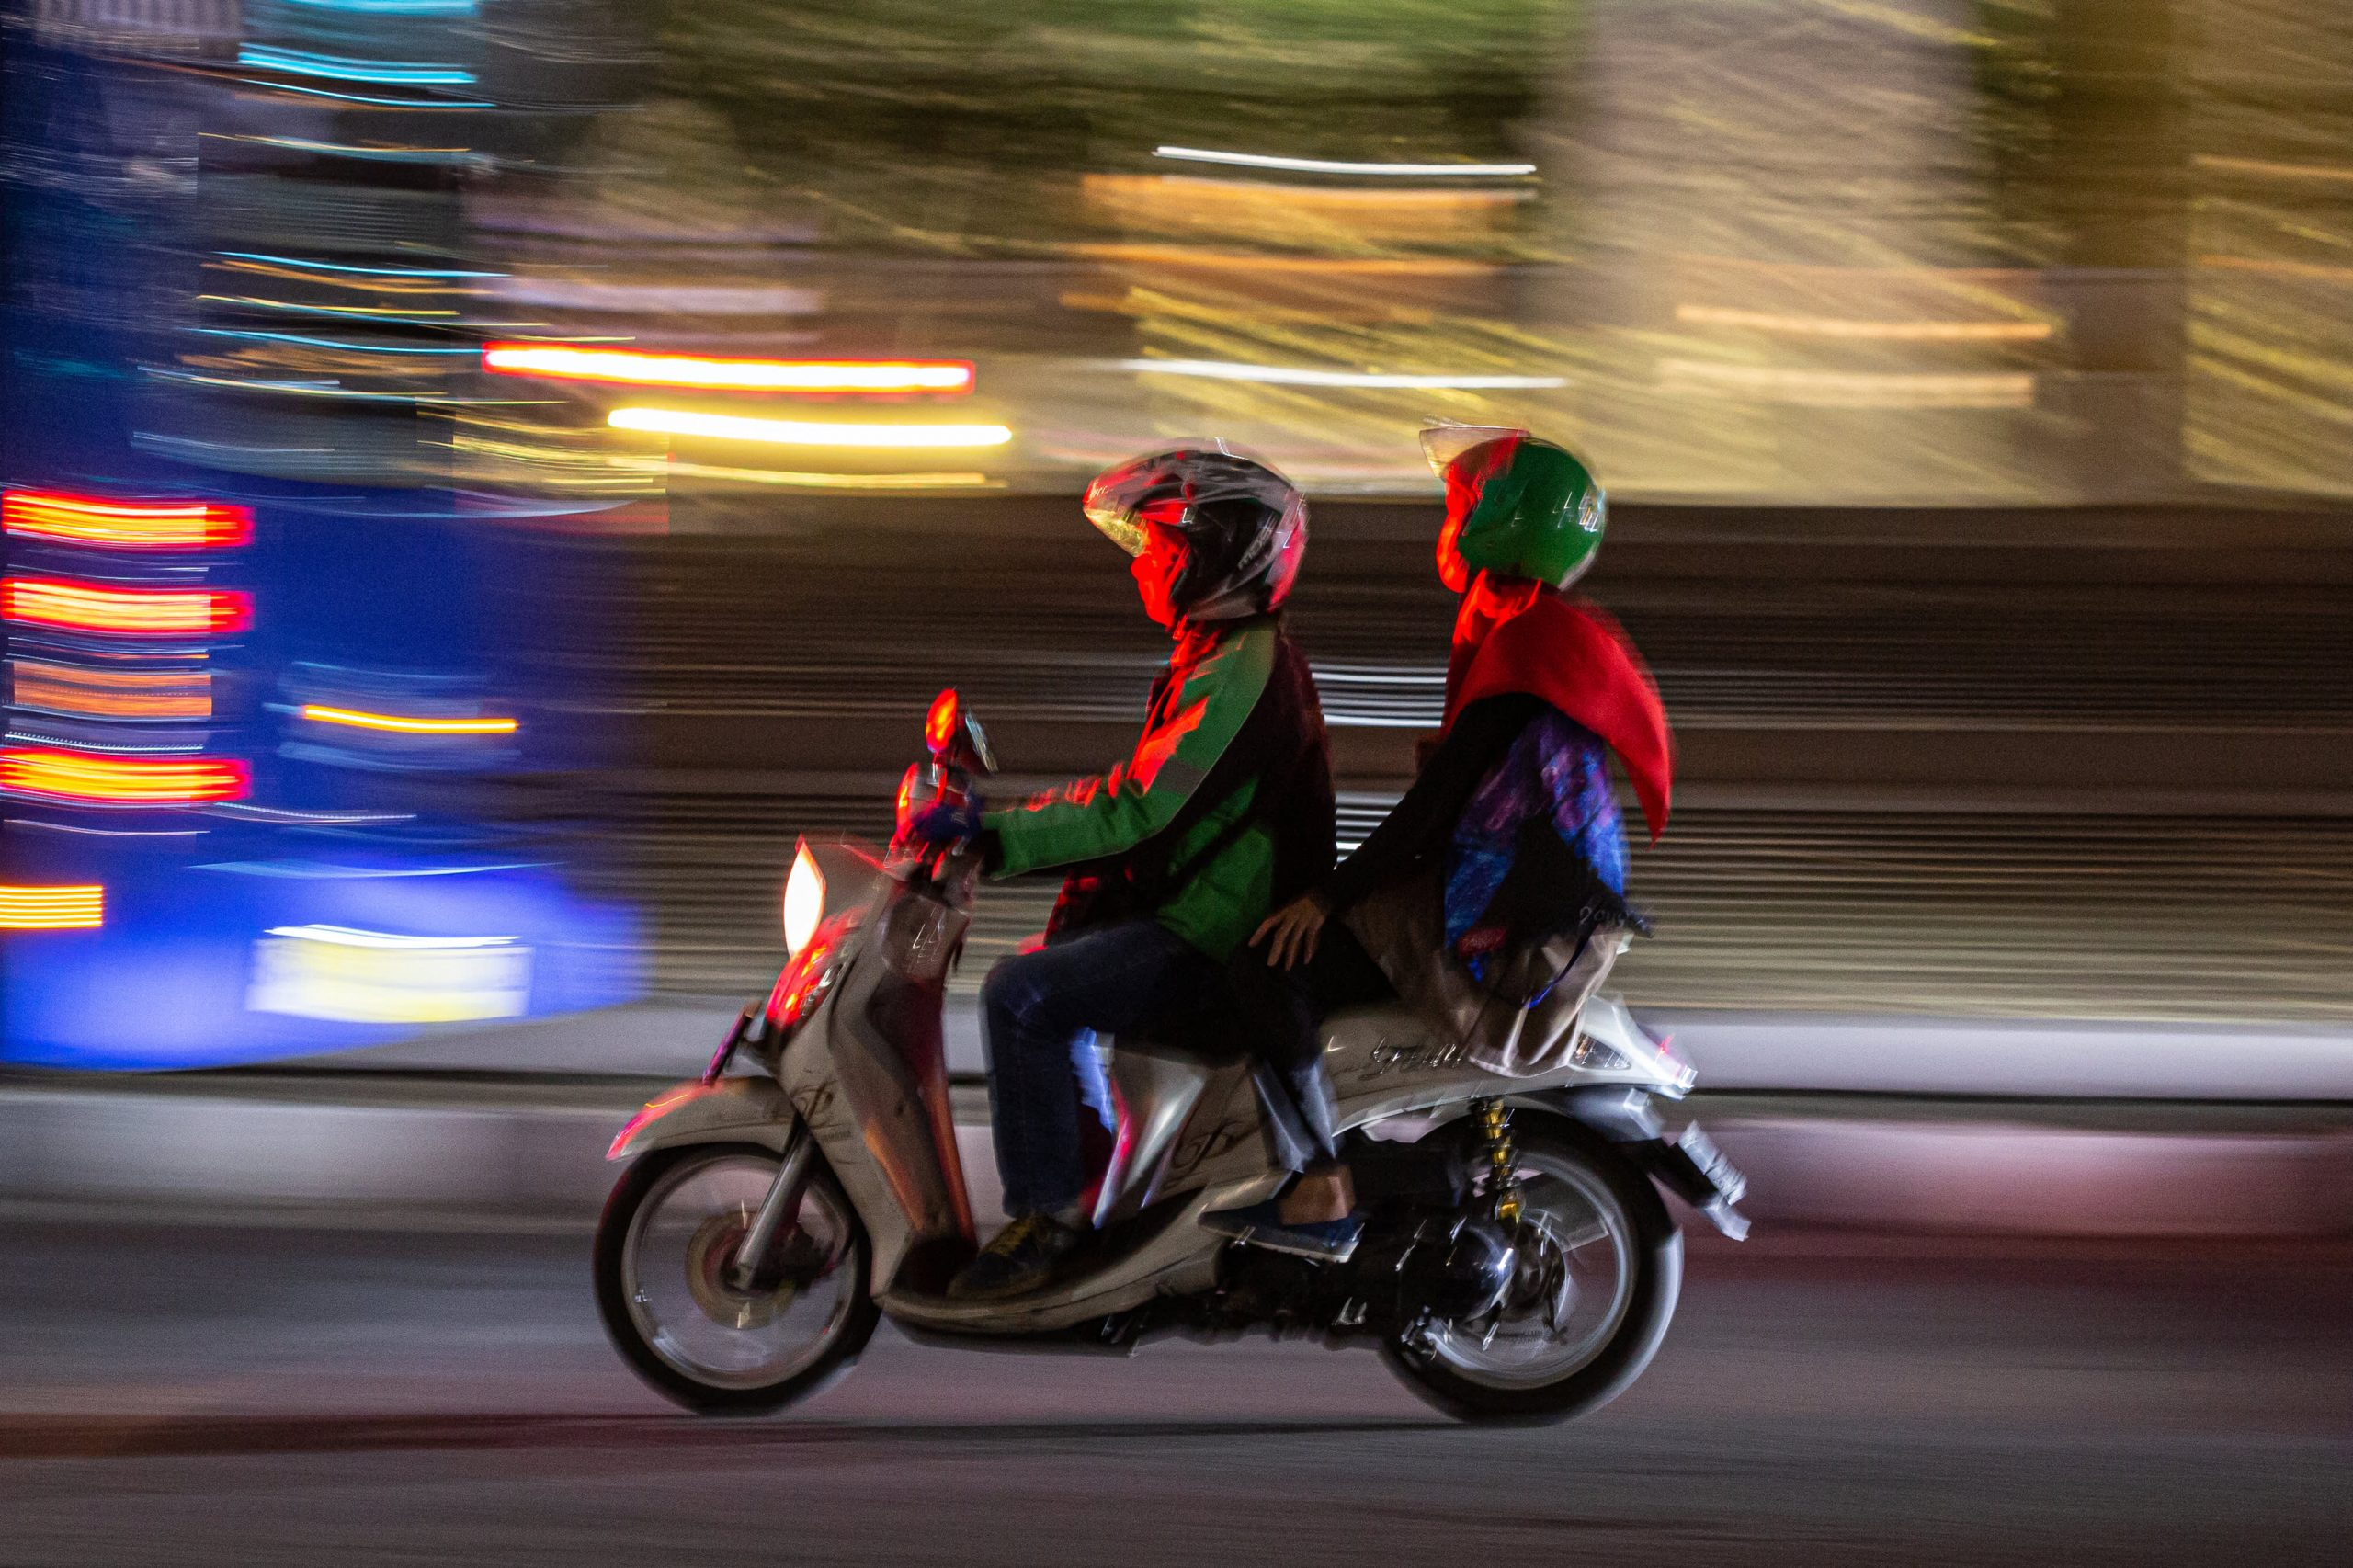 indonesias-gojek-wants-all-vehicles-on-its-app-to-be-electric-by-2030